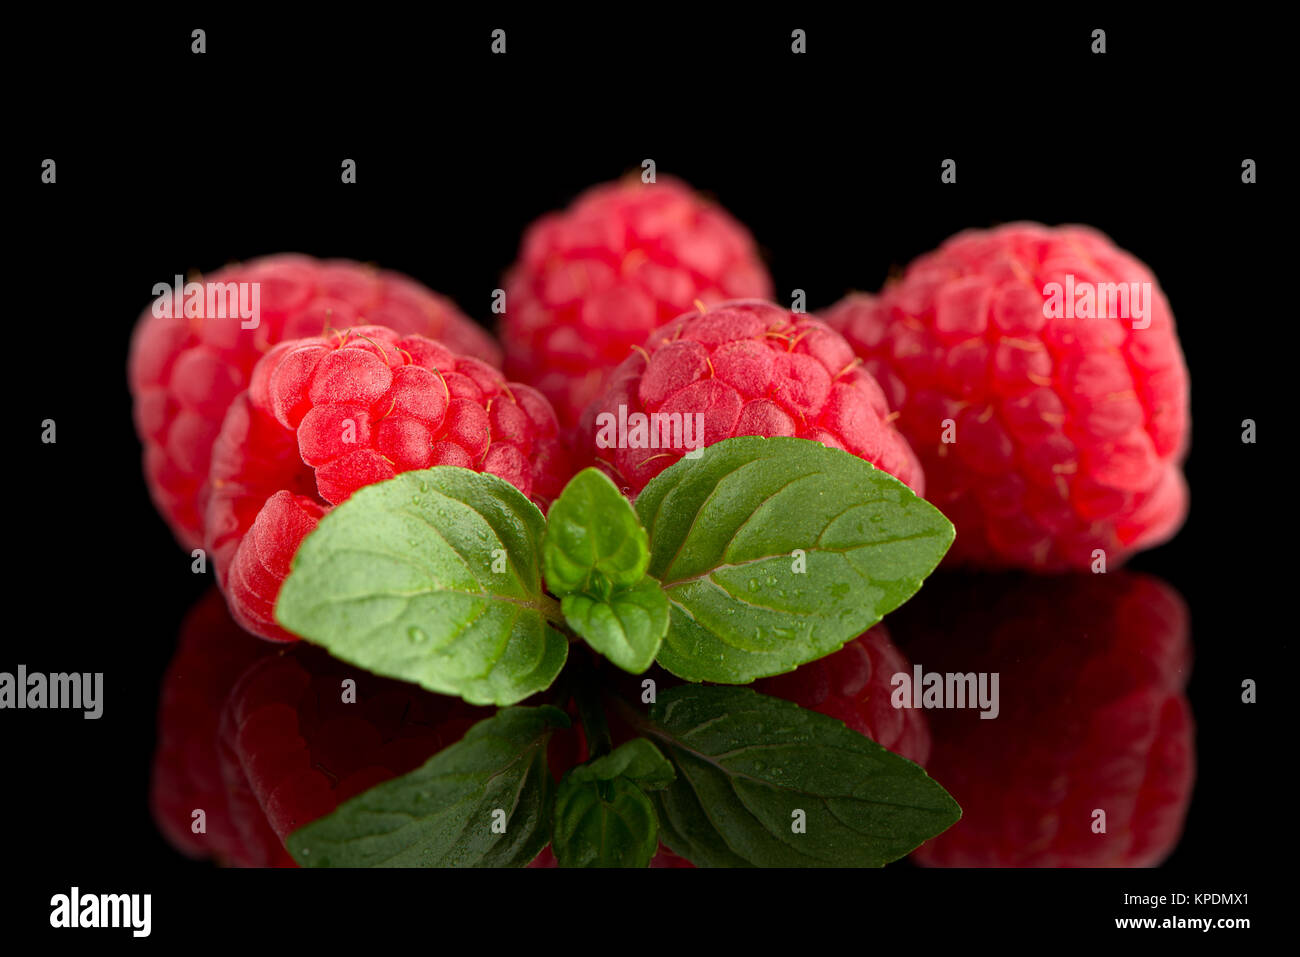 Raspberries with leaves - Stock Image